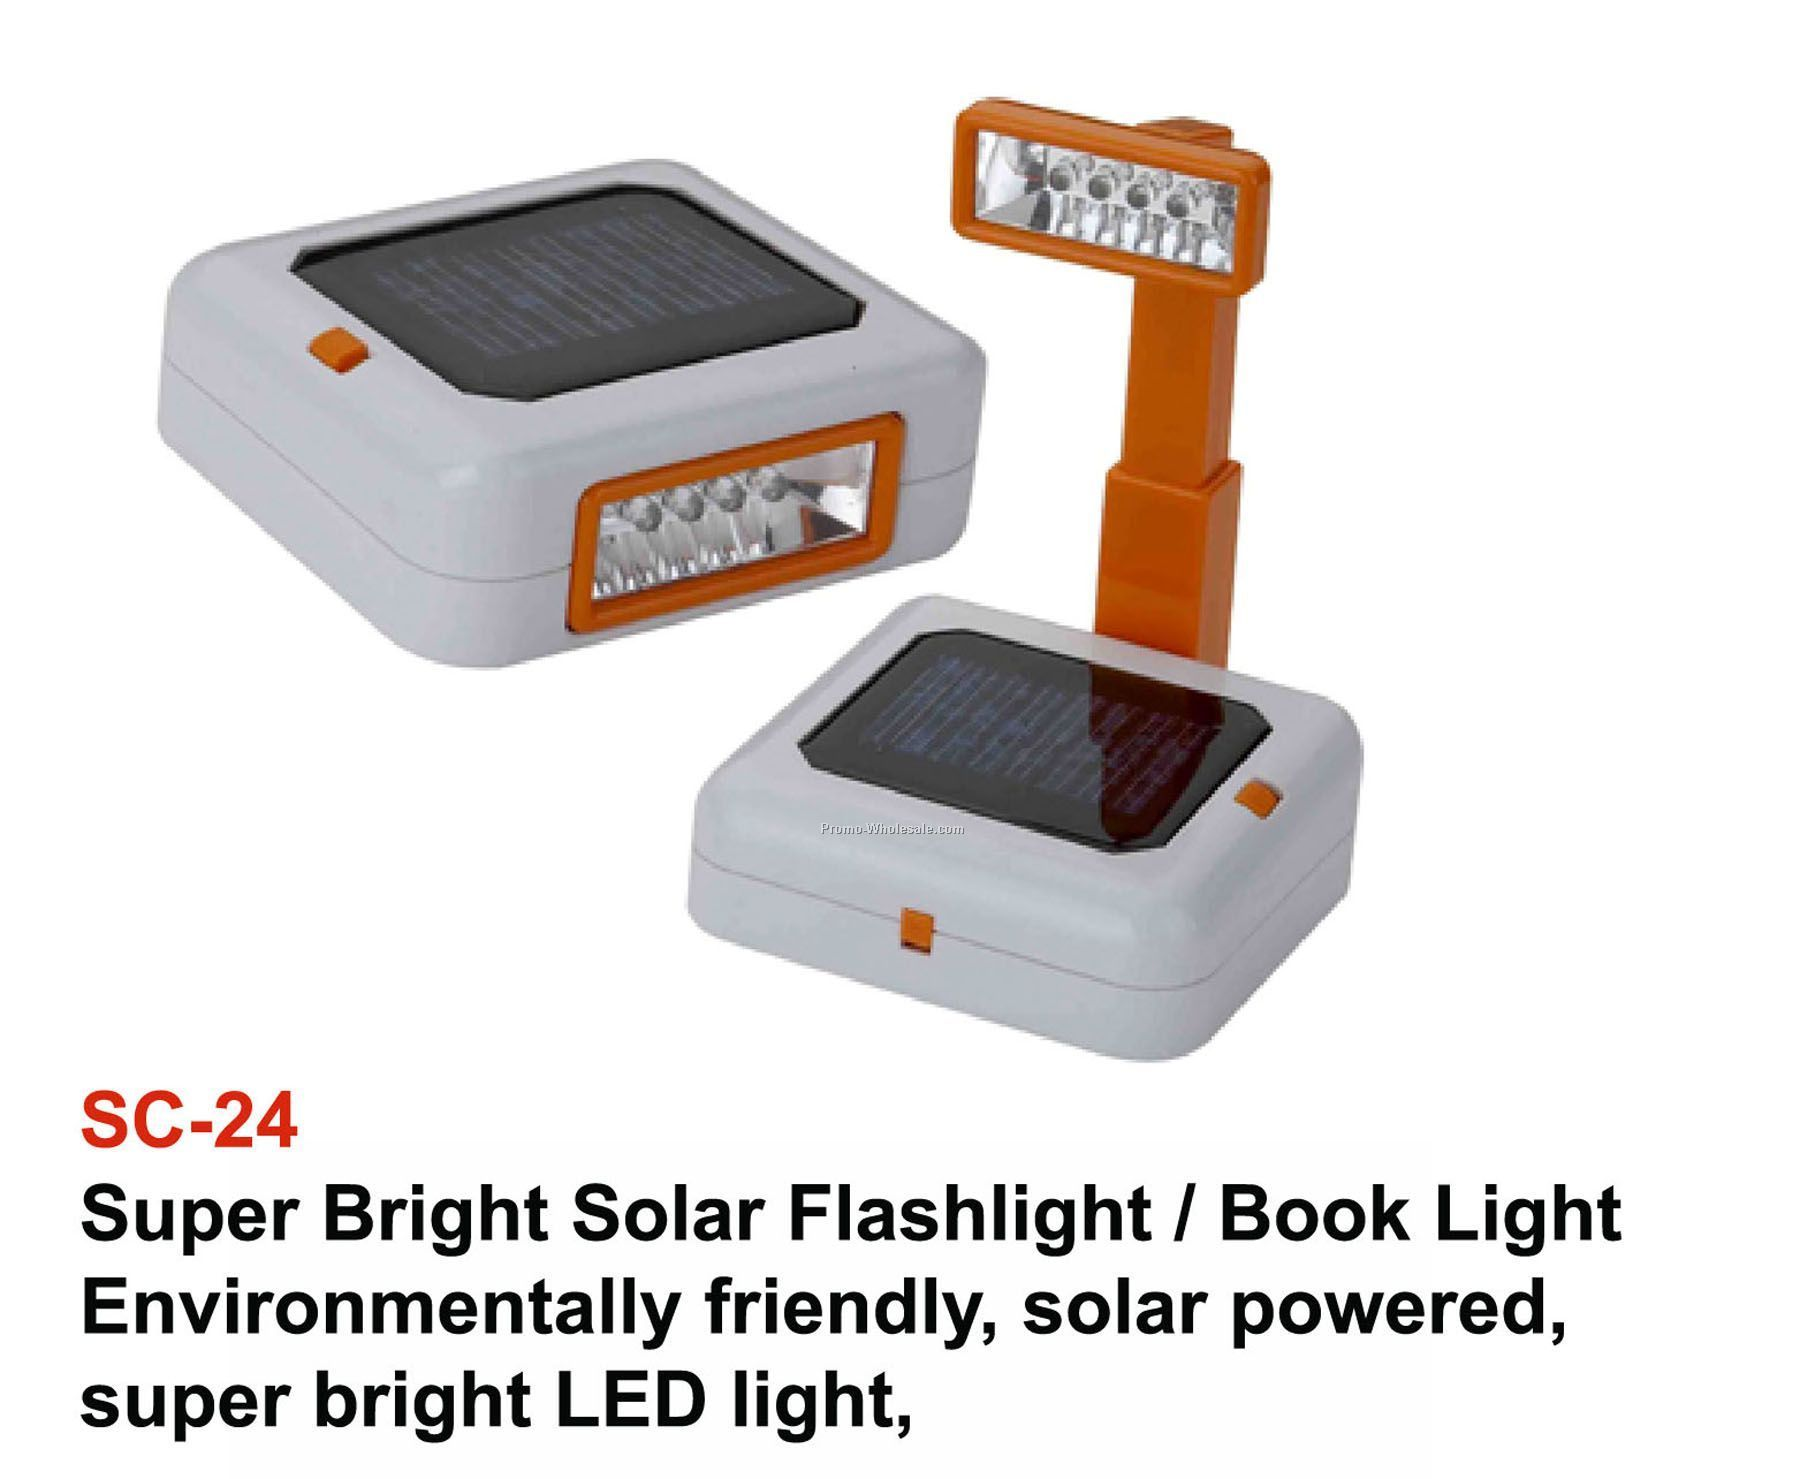 Solar Powered Flashlight / Book Light